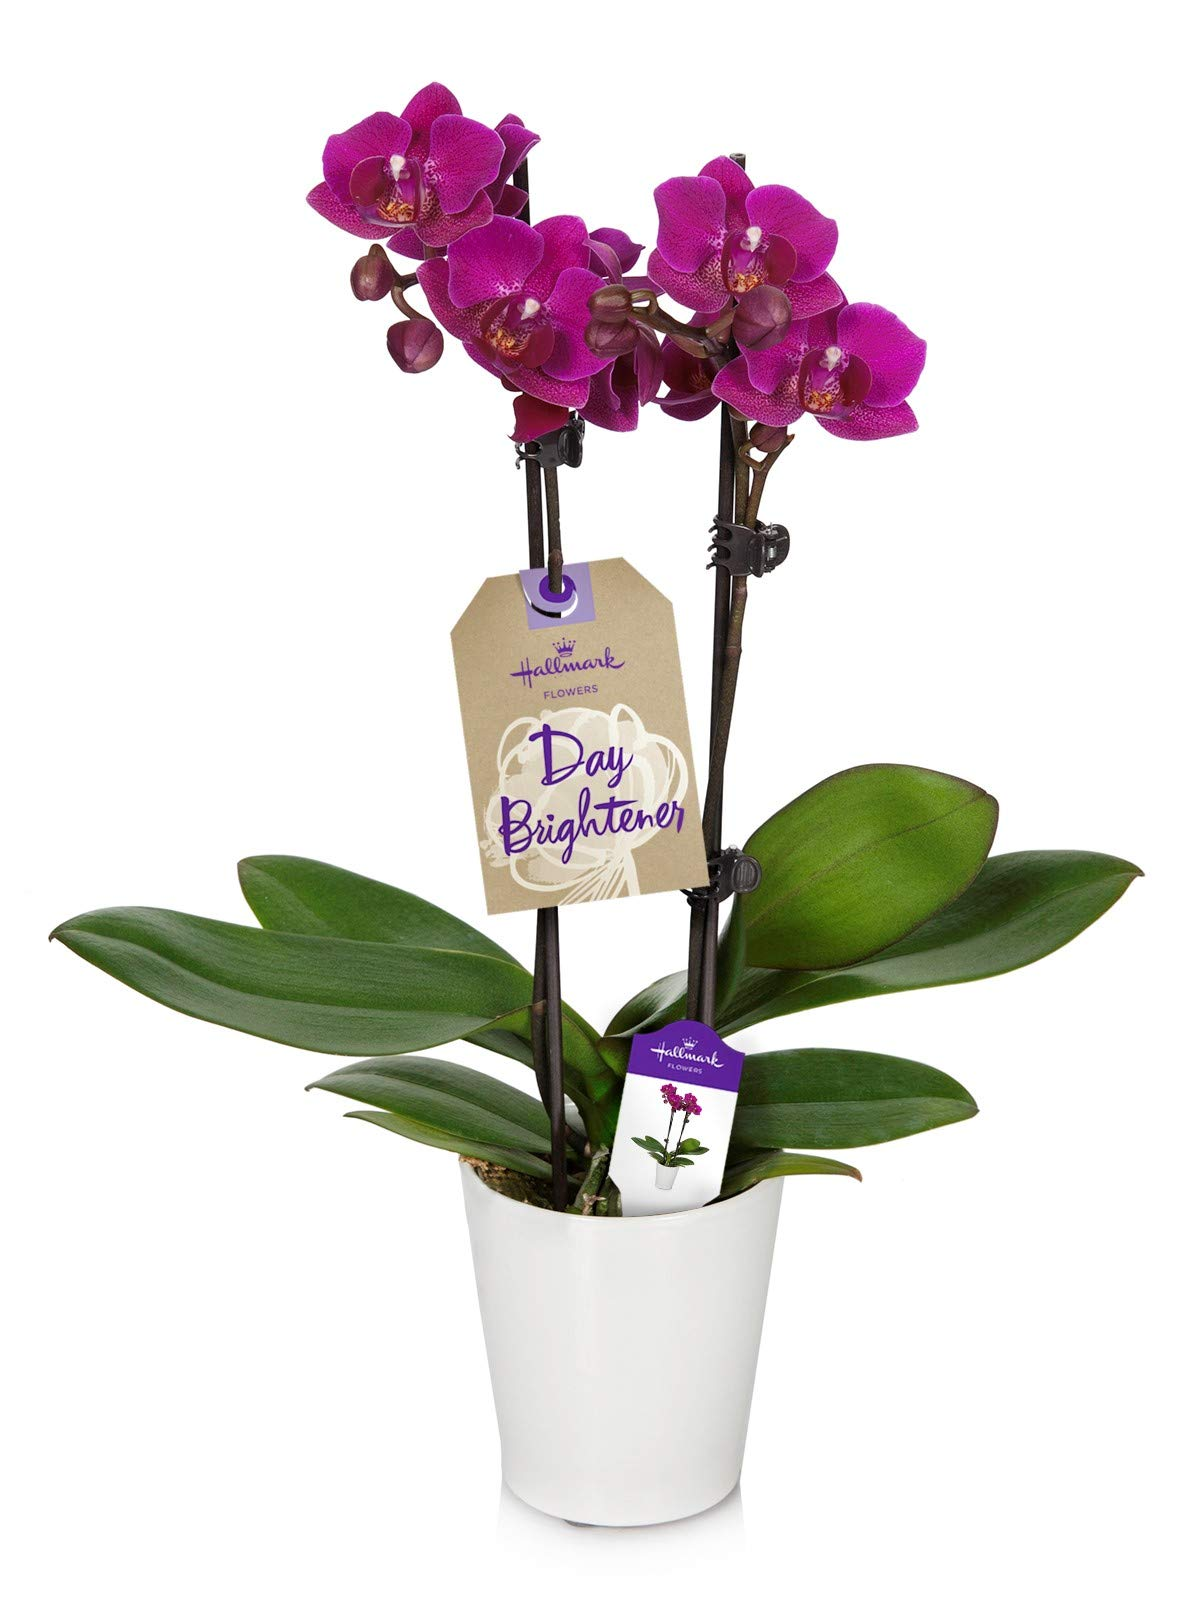 Orchid Flower Plant, Purple in 3-Inch White Ceramic Container, From Hallmark Flowers